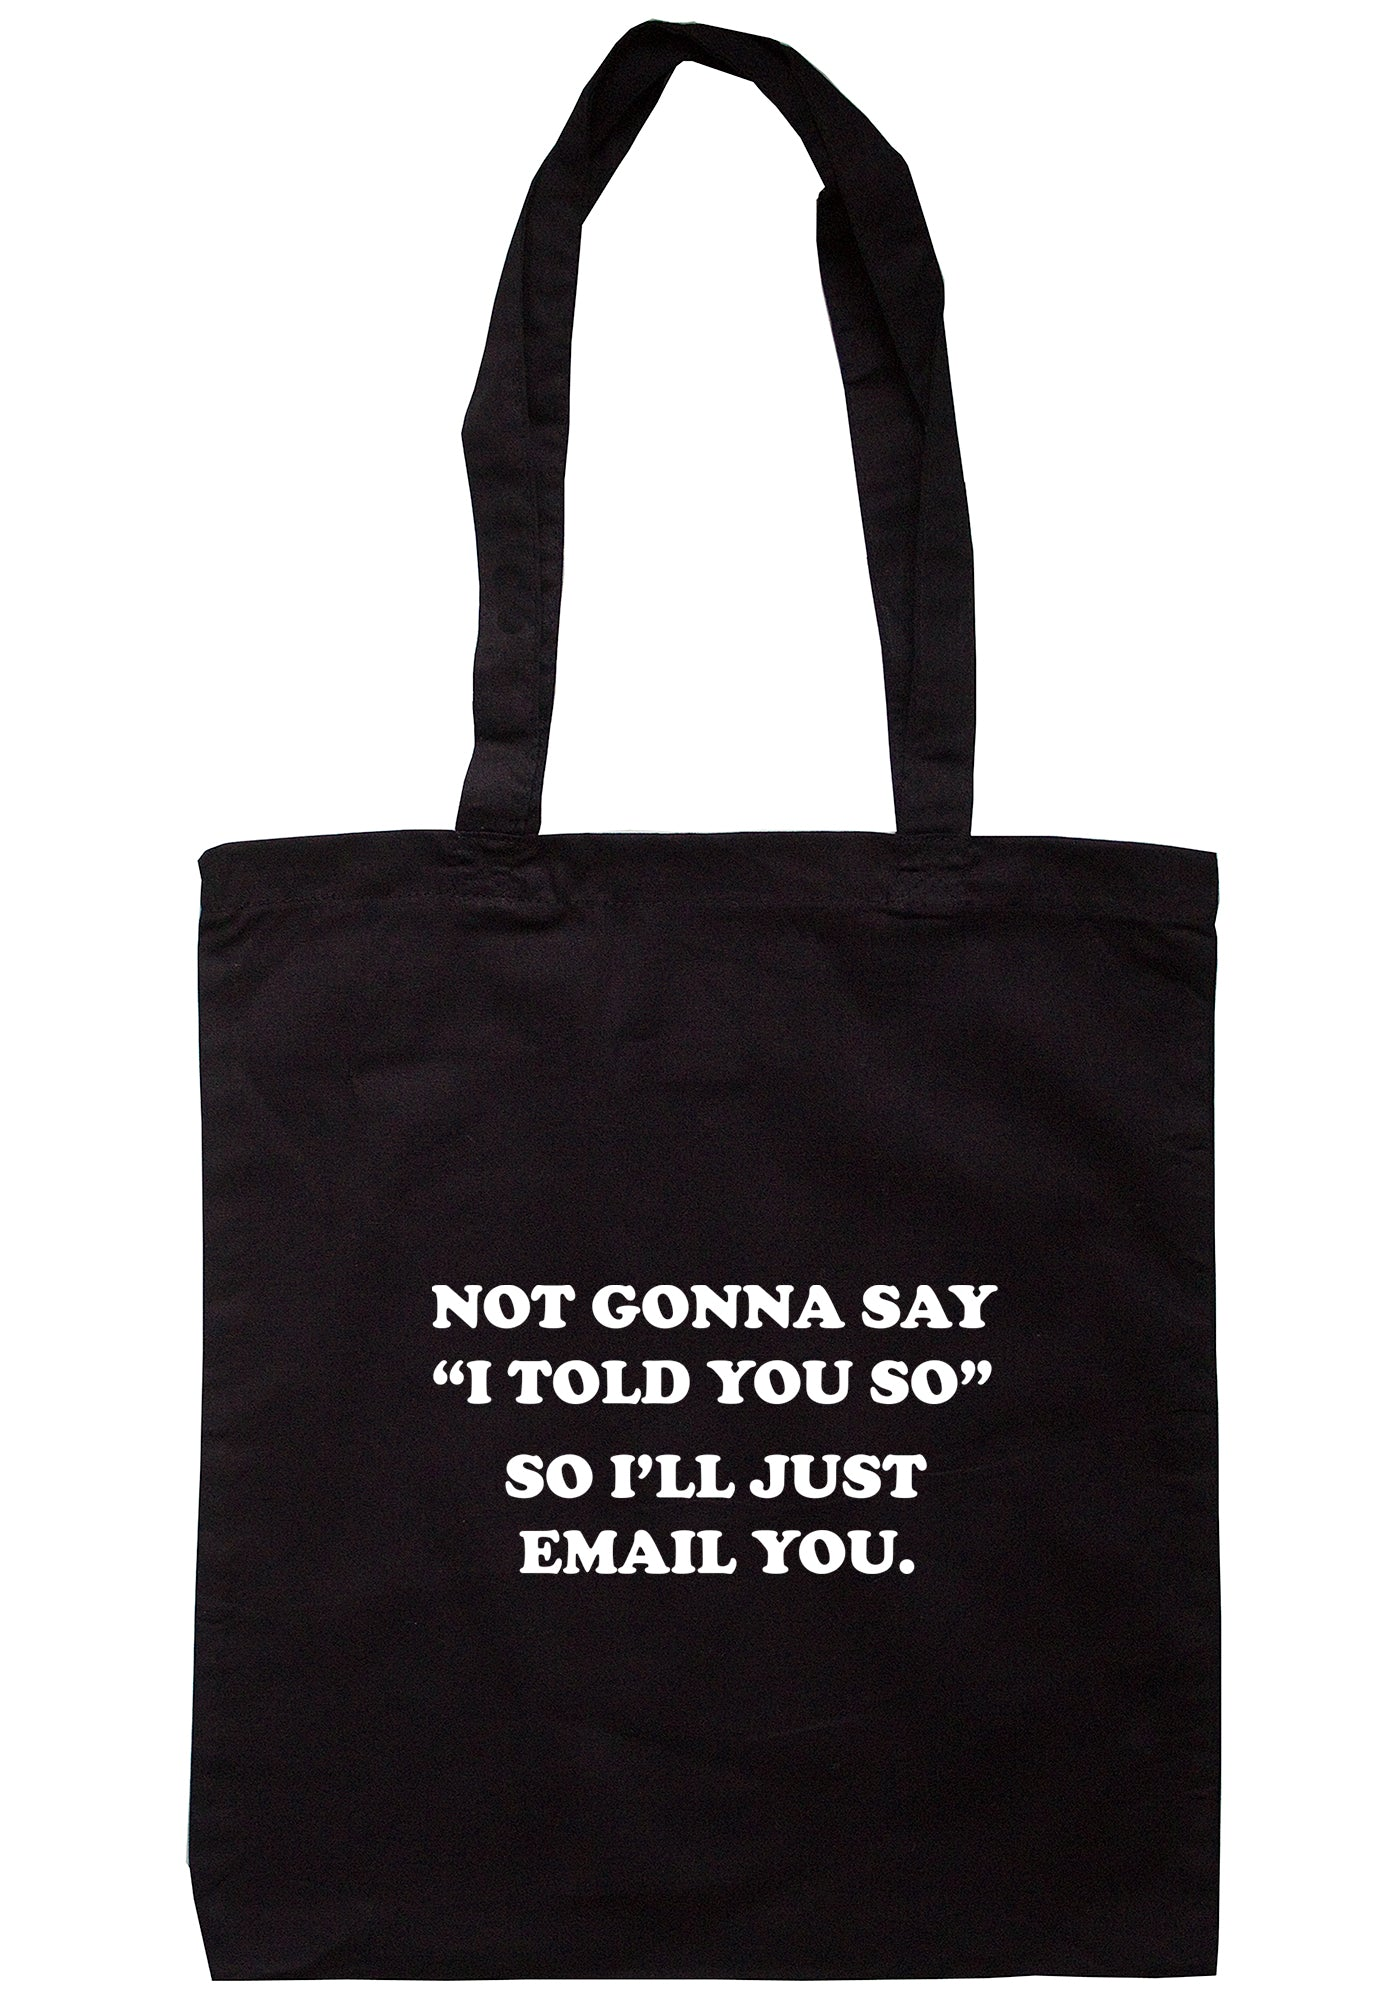 "Not Gonna Say ""I Told You So"" So I'll Just Email You Tote Bag S1159 - Illustrated Identity Ltd."